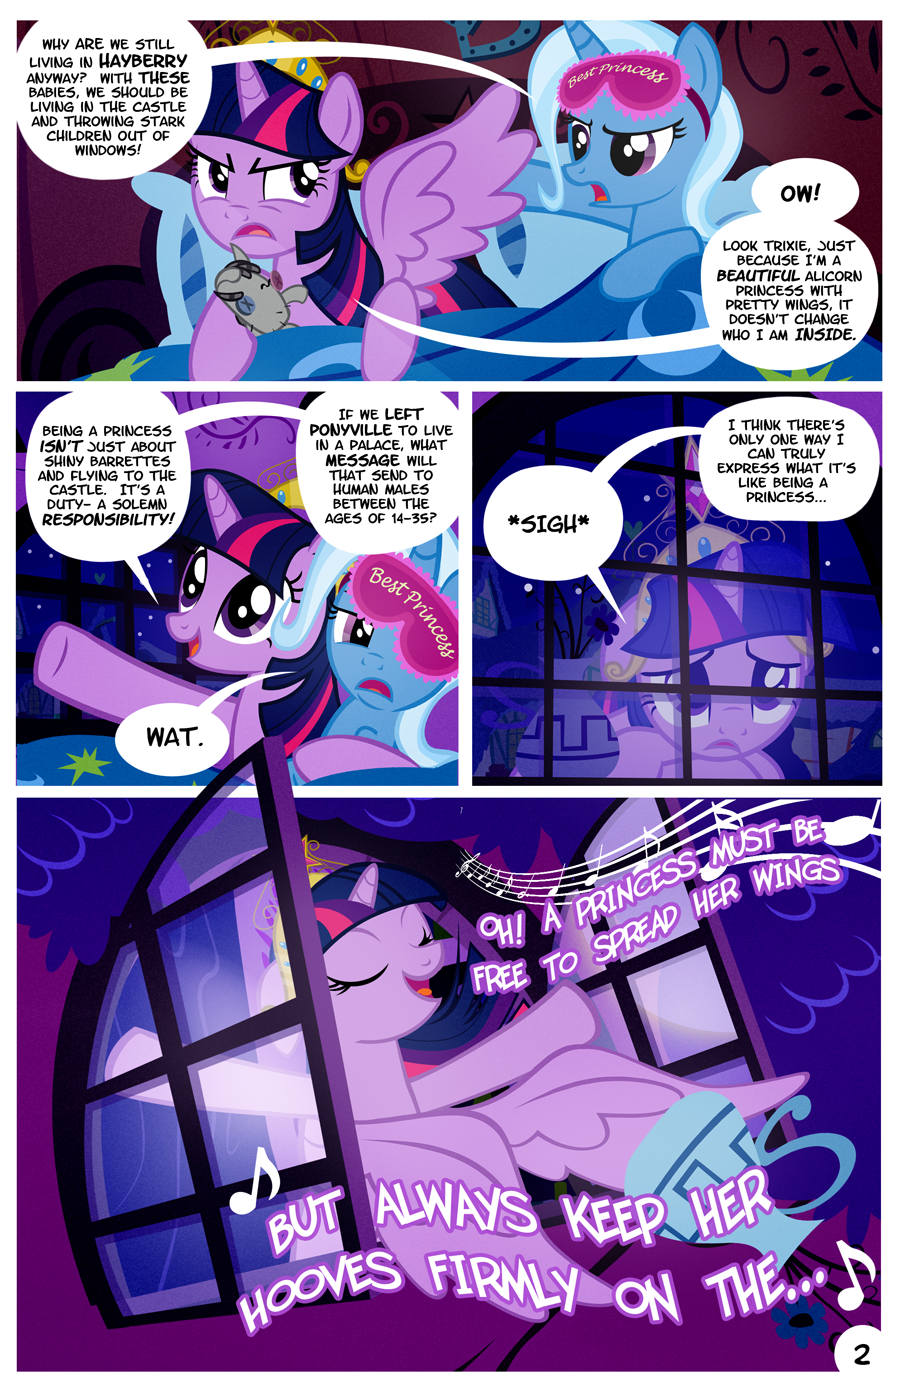 Ponyville Library After Dark Page 2 by PixelKitties